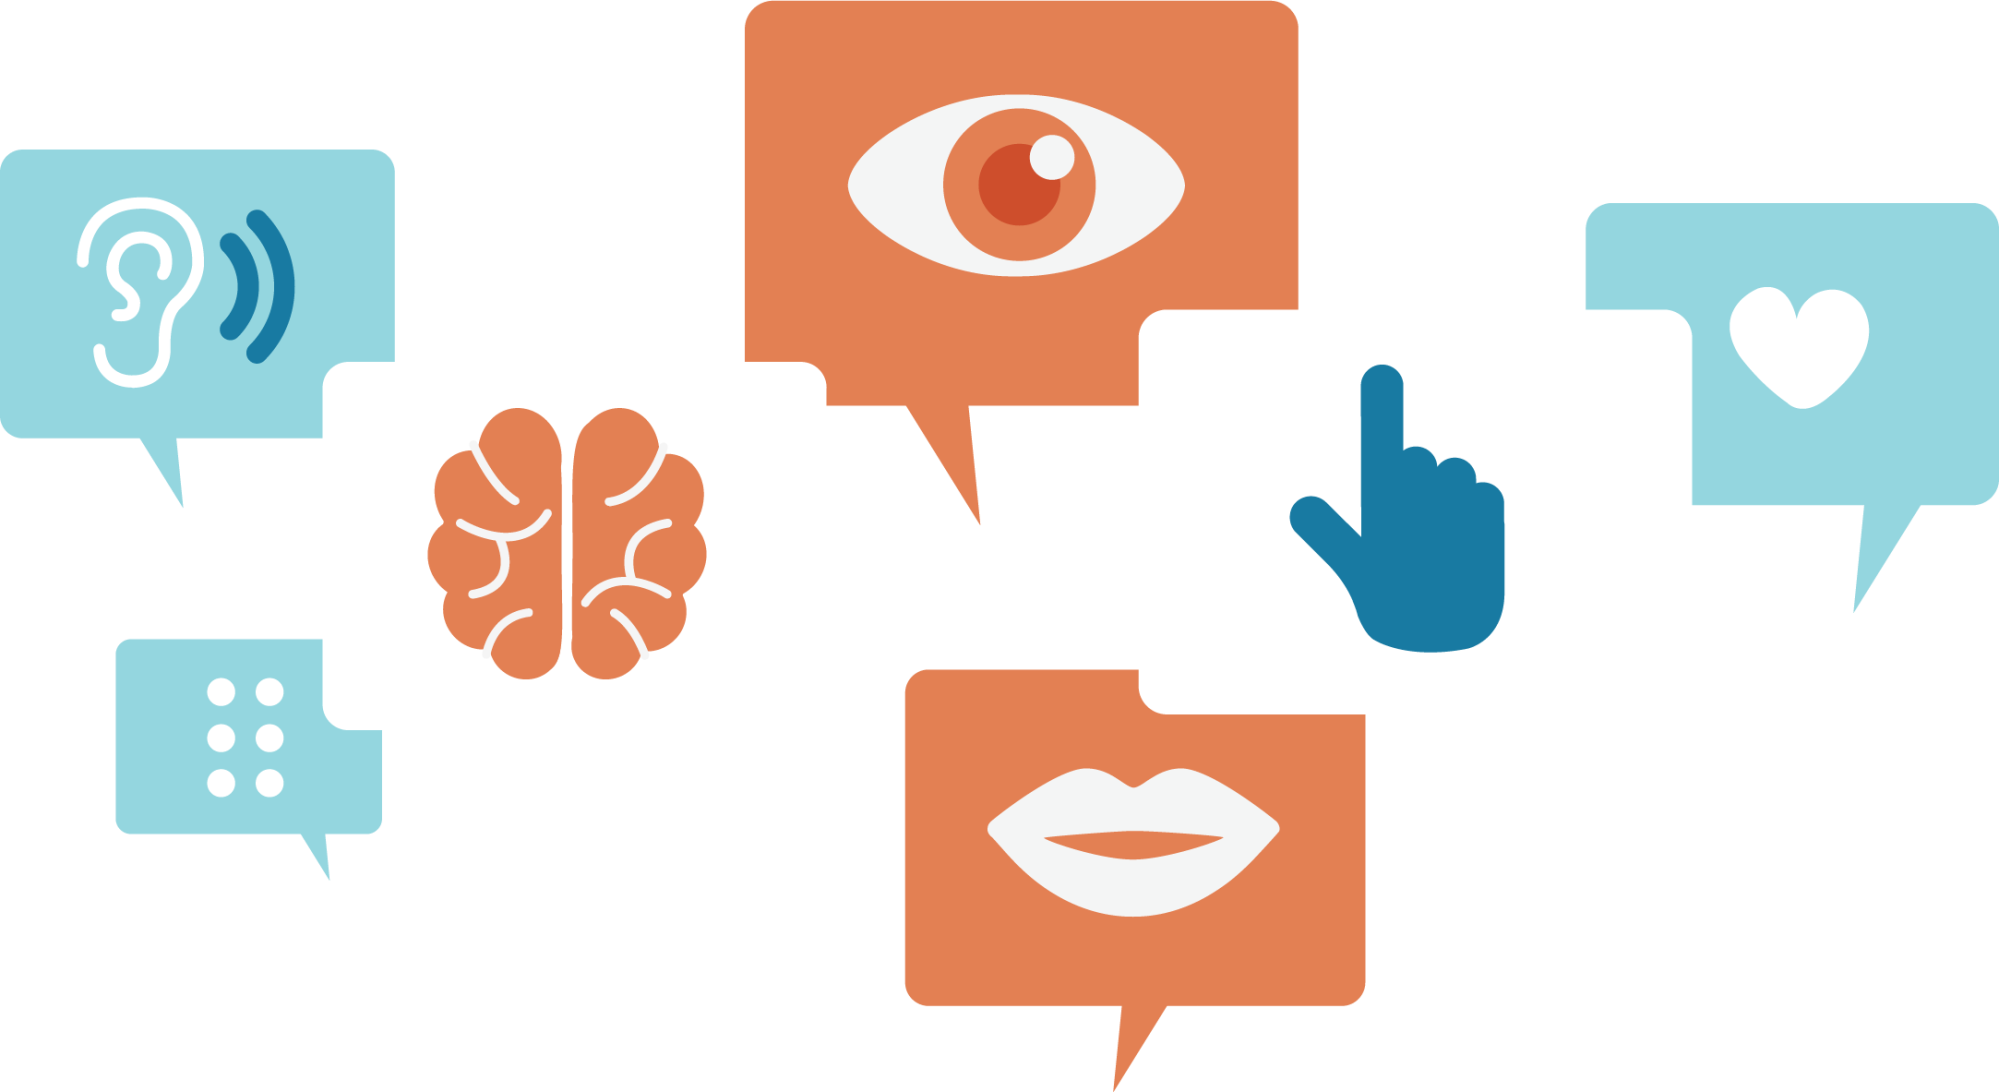 various access symbols nest in speech bubbles in a collage